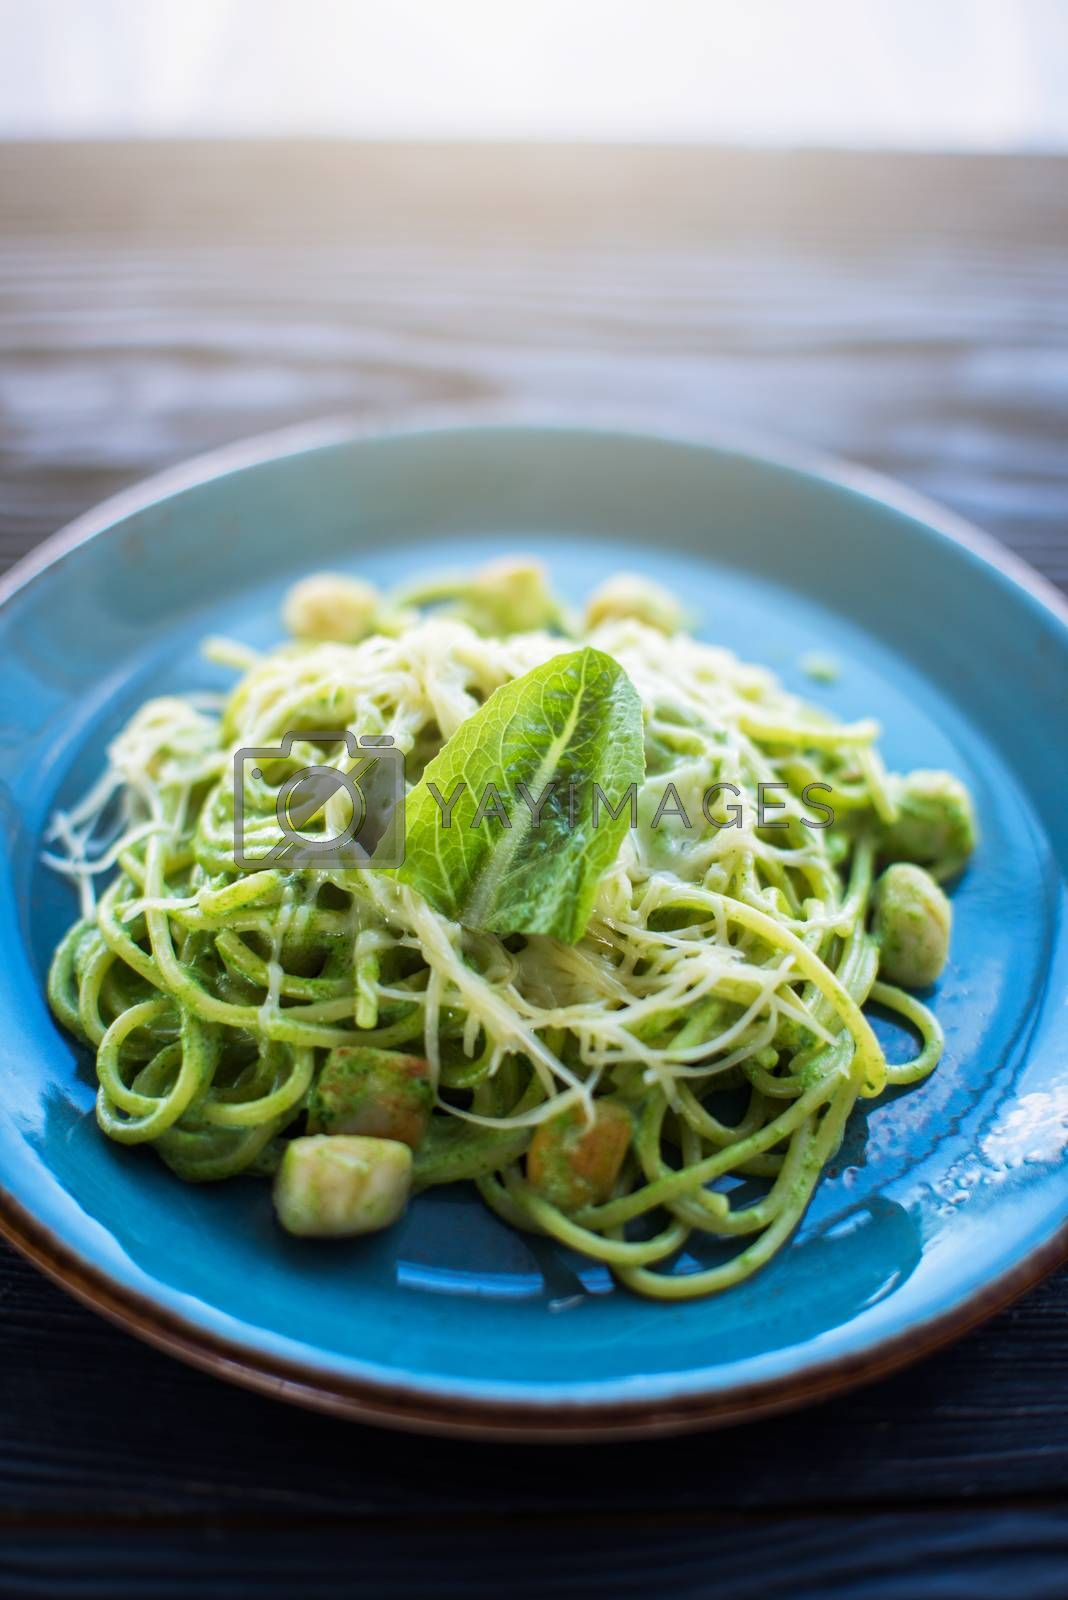 Green Pasta with scallop and sauce on blue plate